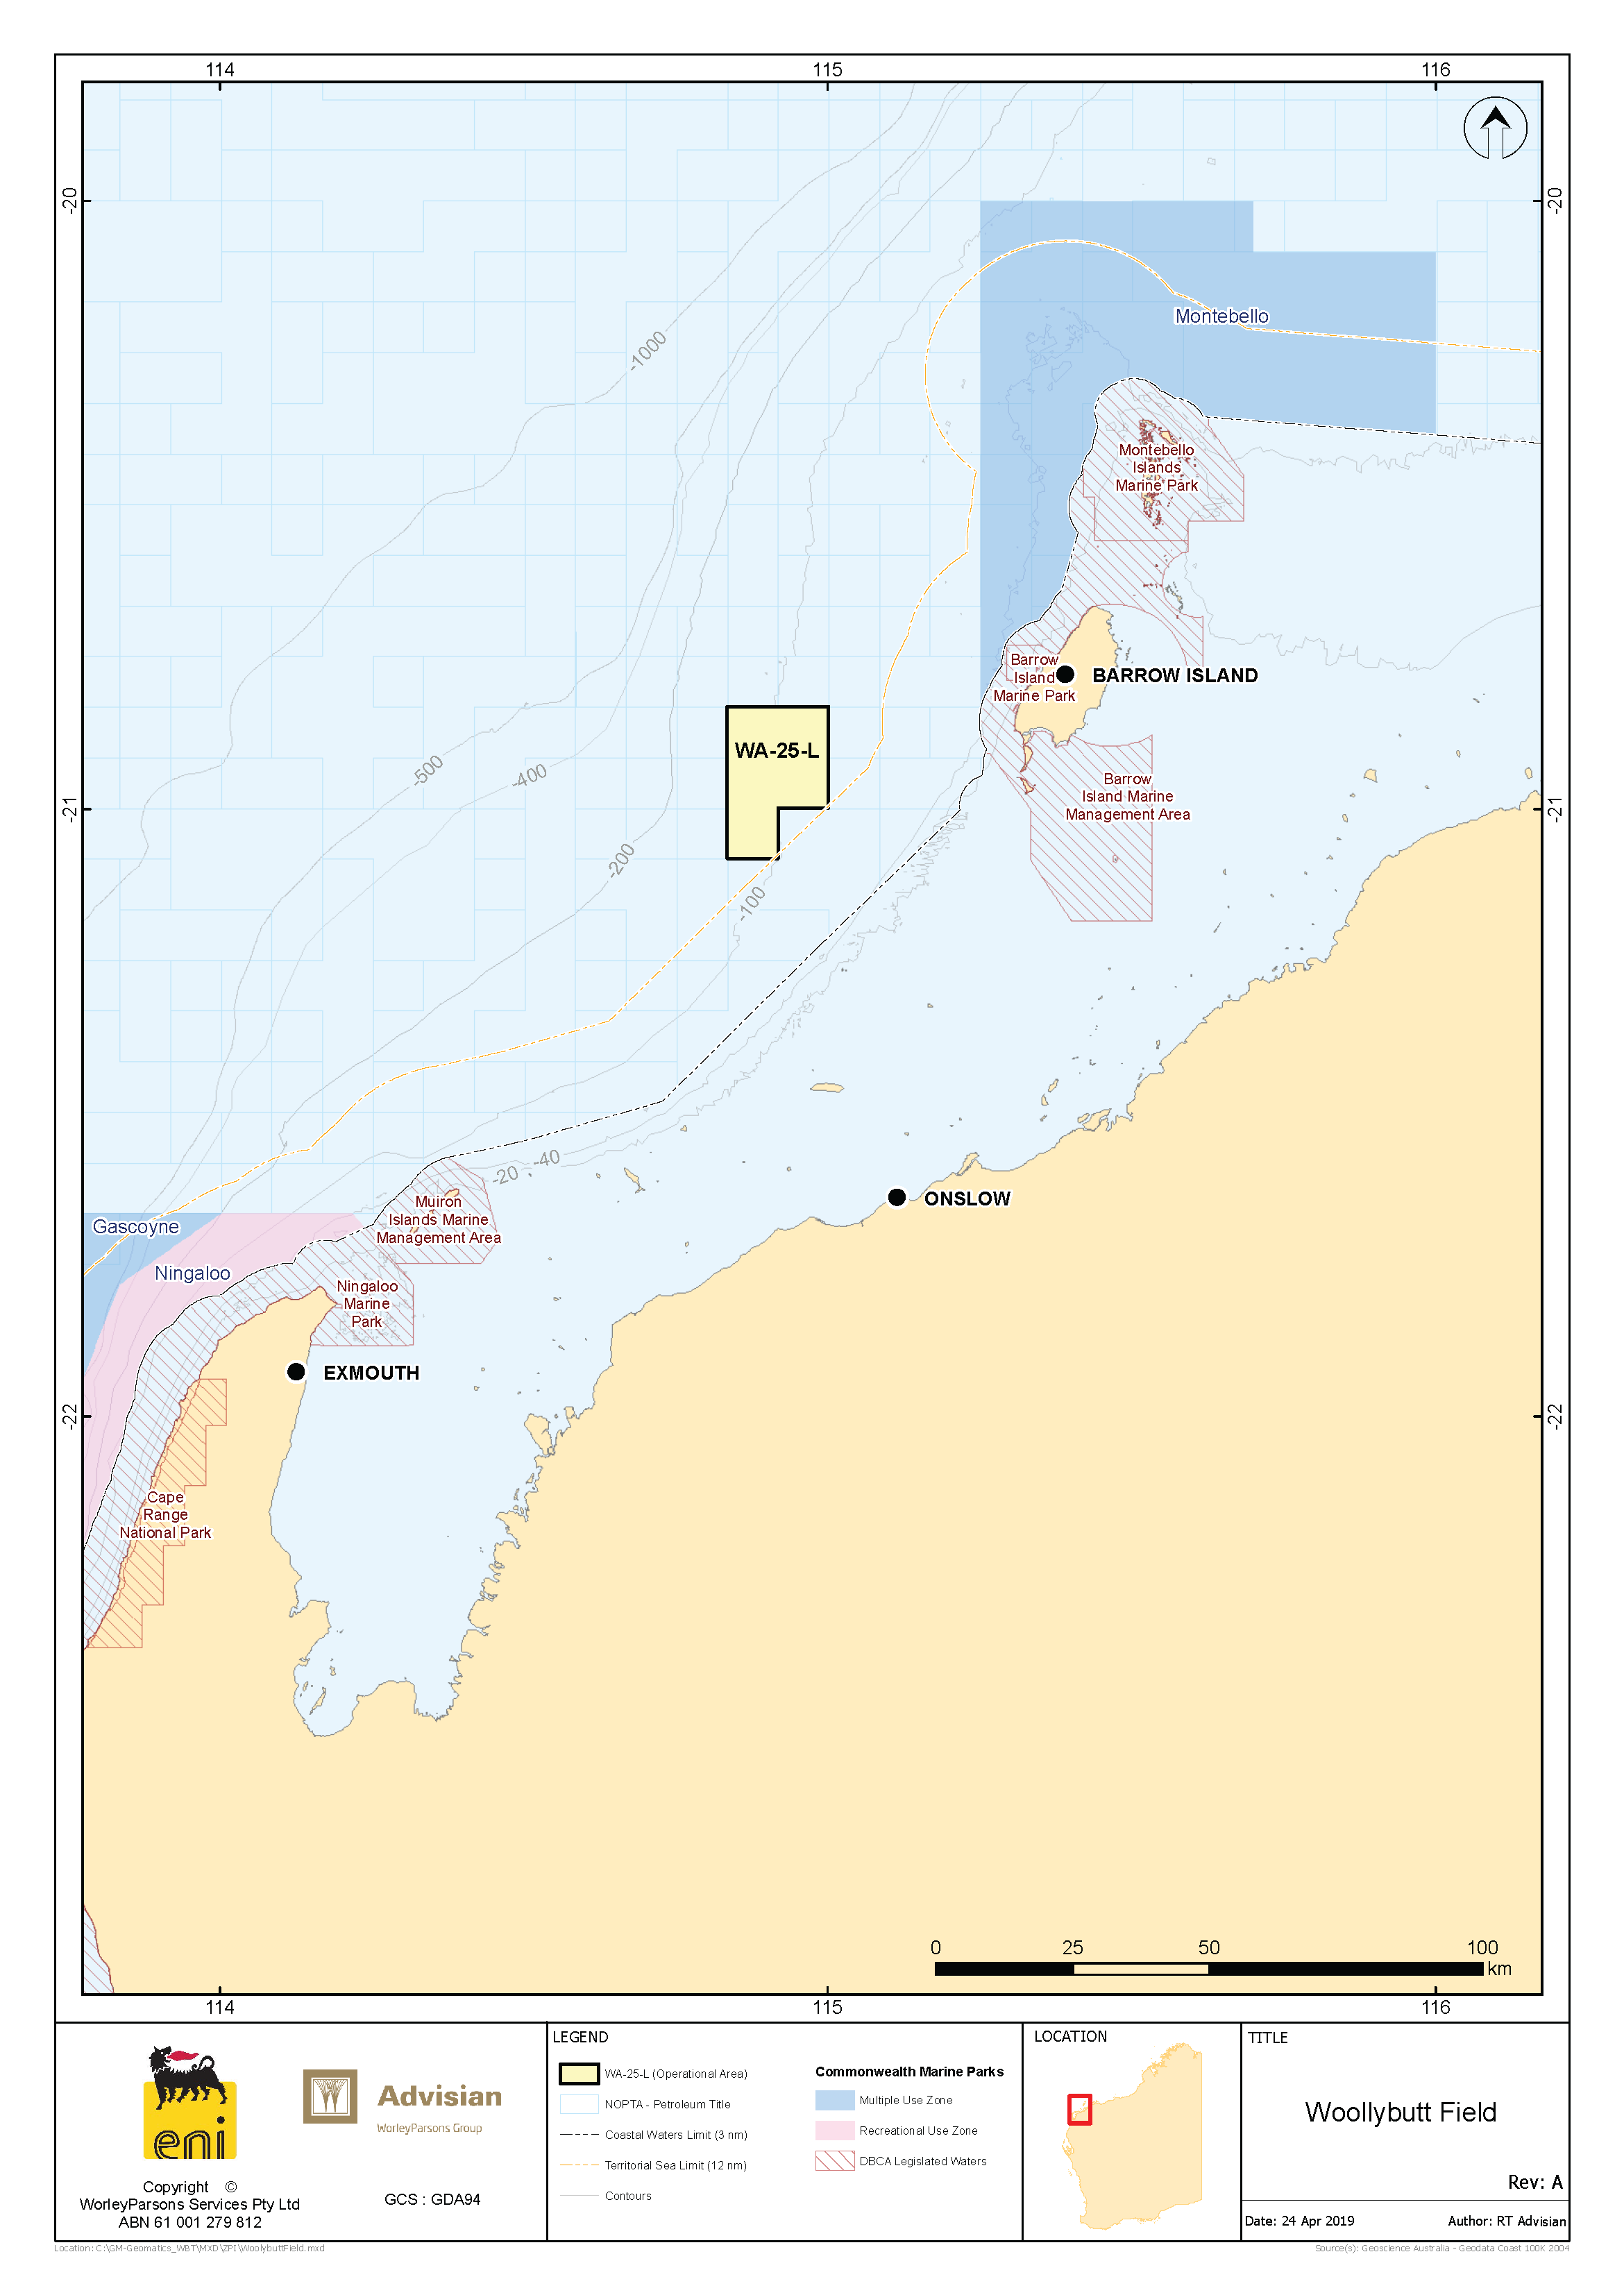 Location map - Activity: Woollybutt Decommissioning Project (refer to description)